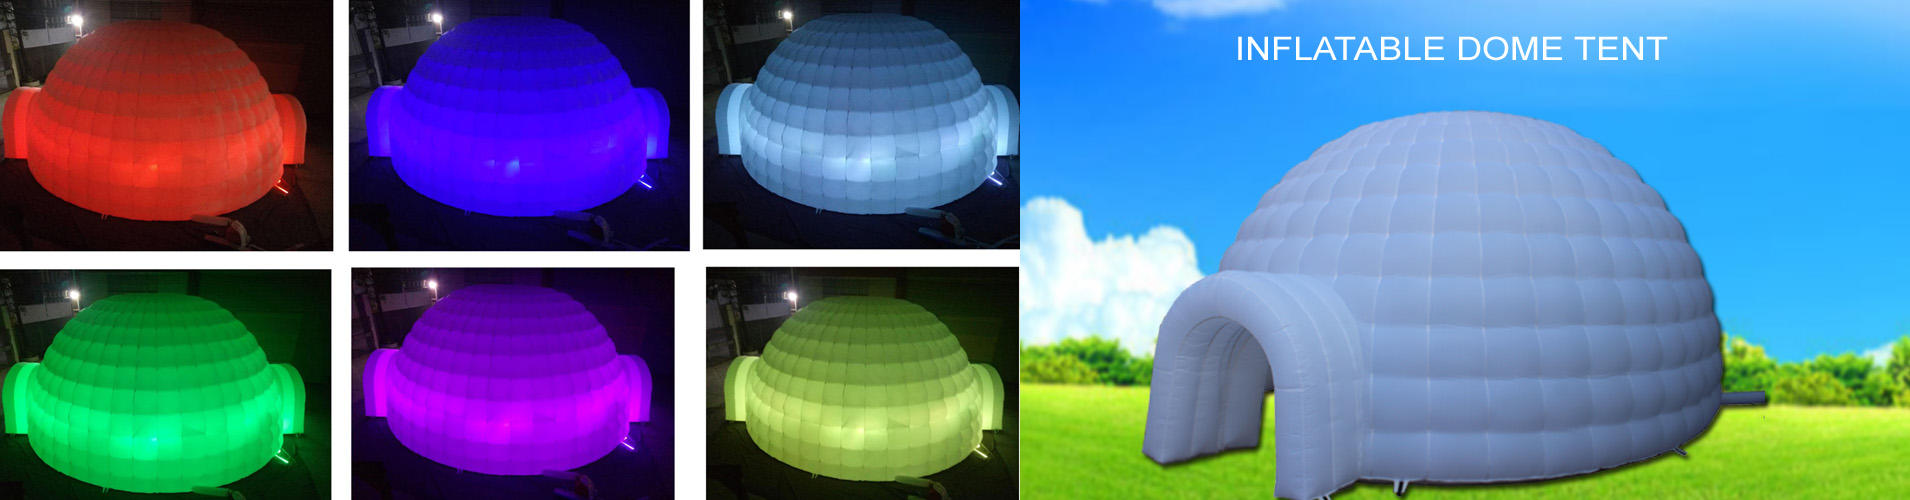 JOY inflatable igloo dome tent directly sale for children-1